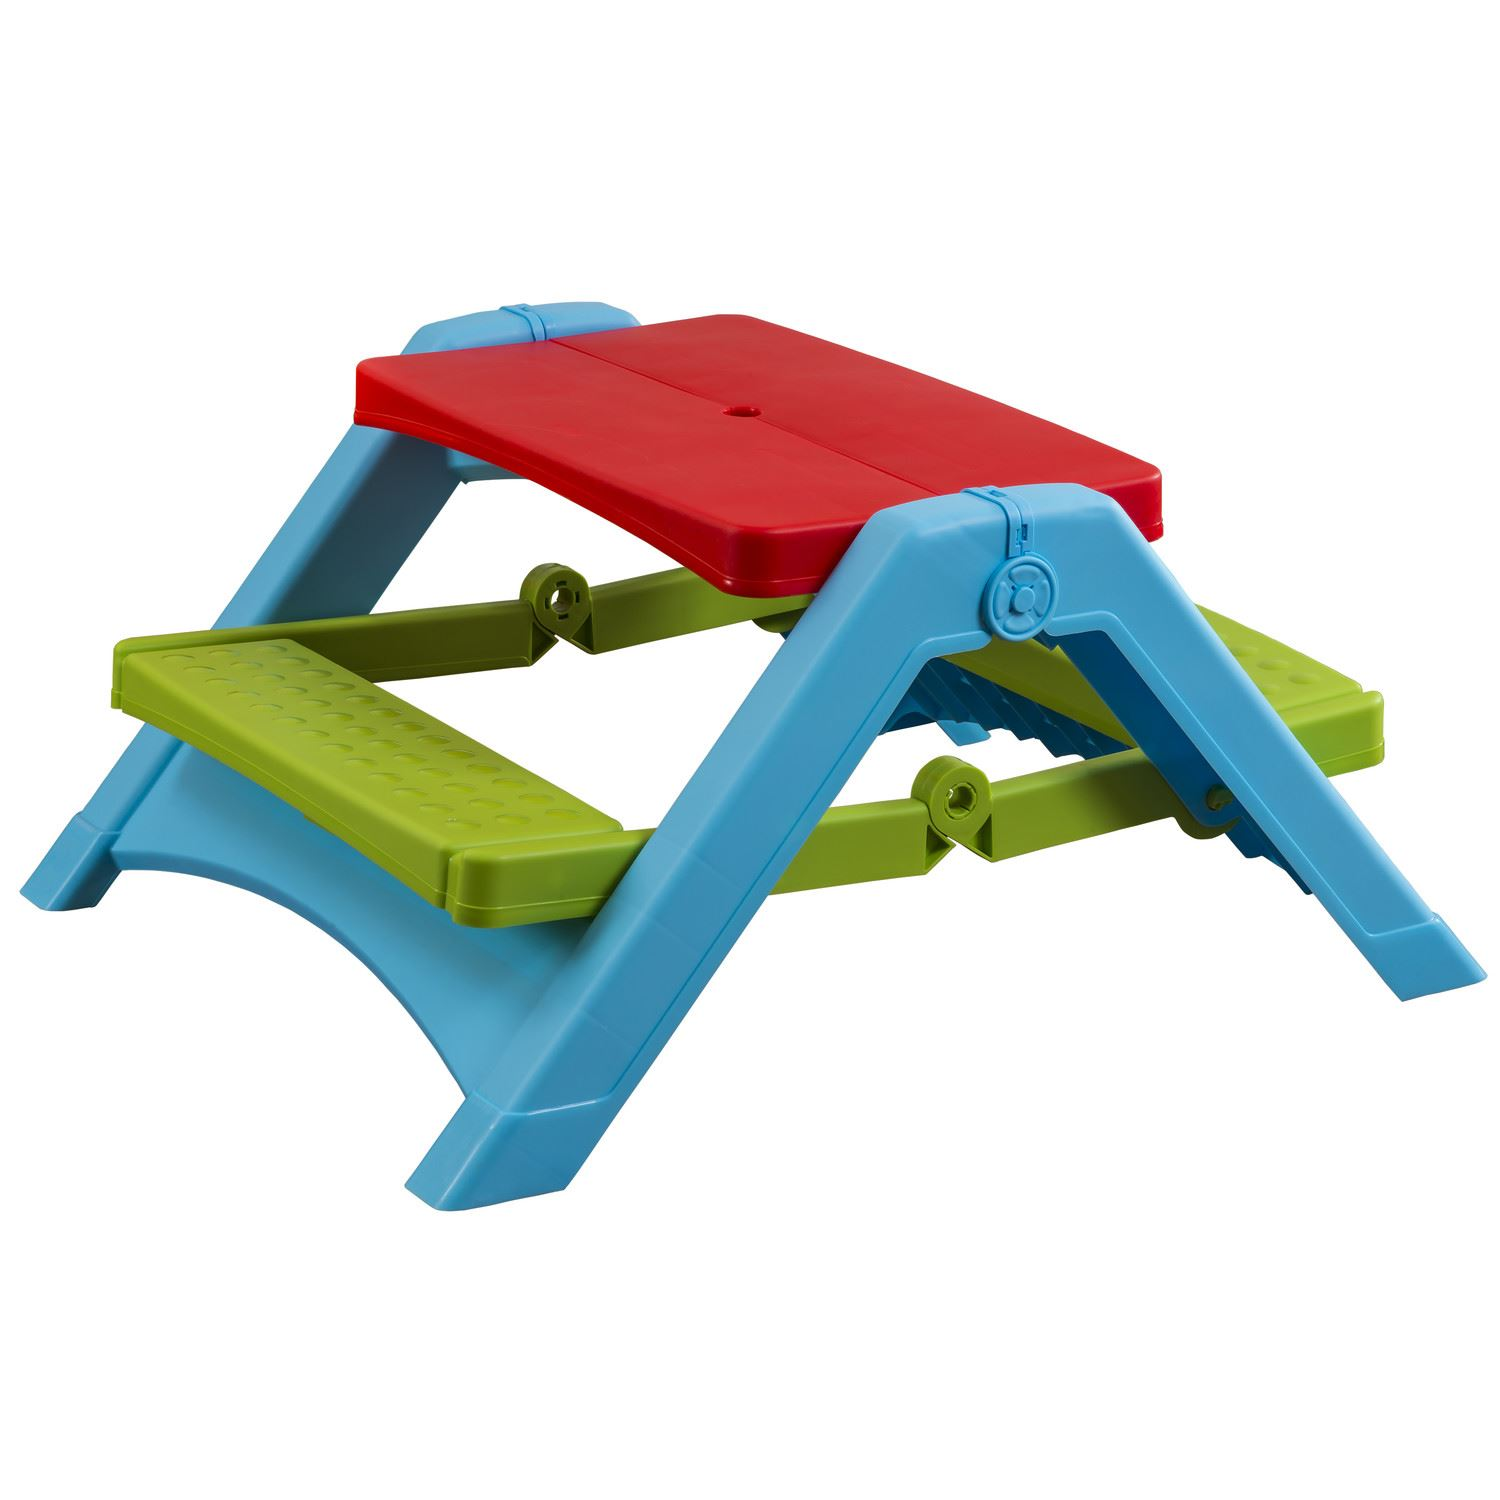 outdoor camping is itm folding furniture image children loading bench kids garden indoor table picnic